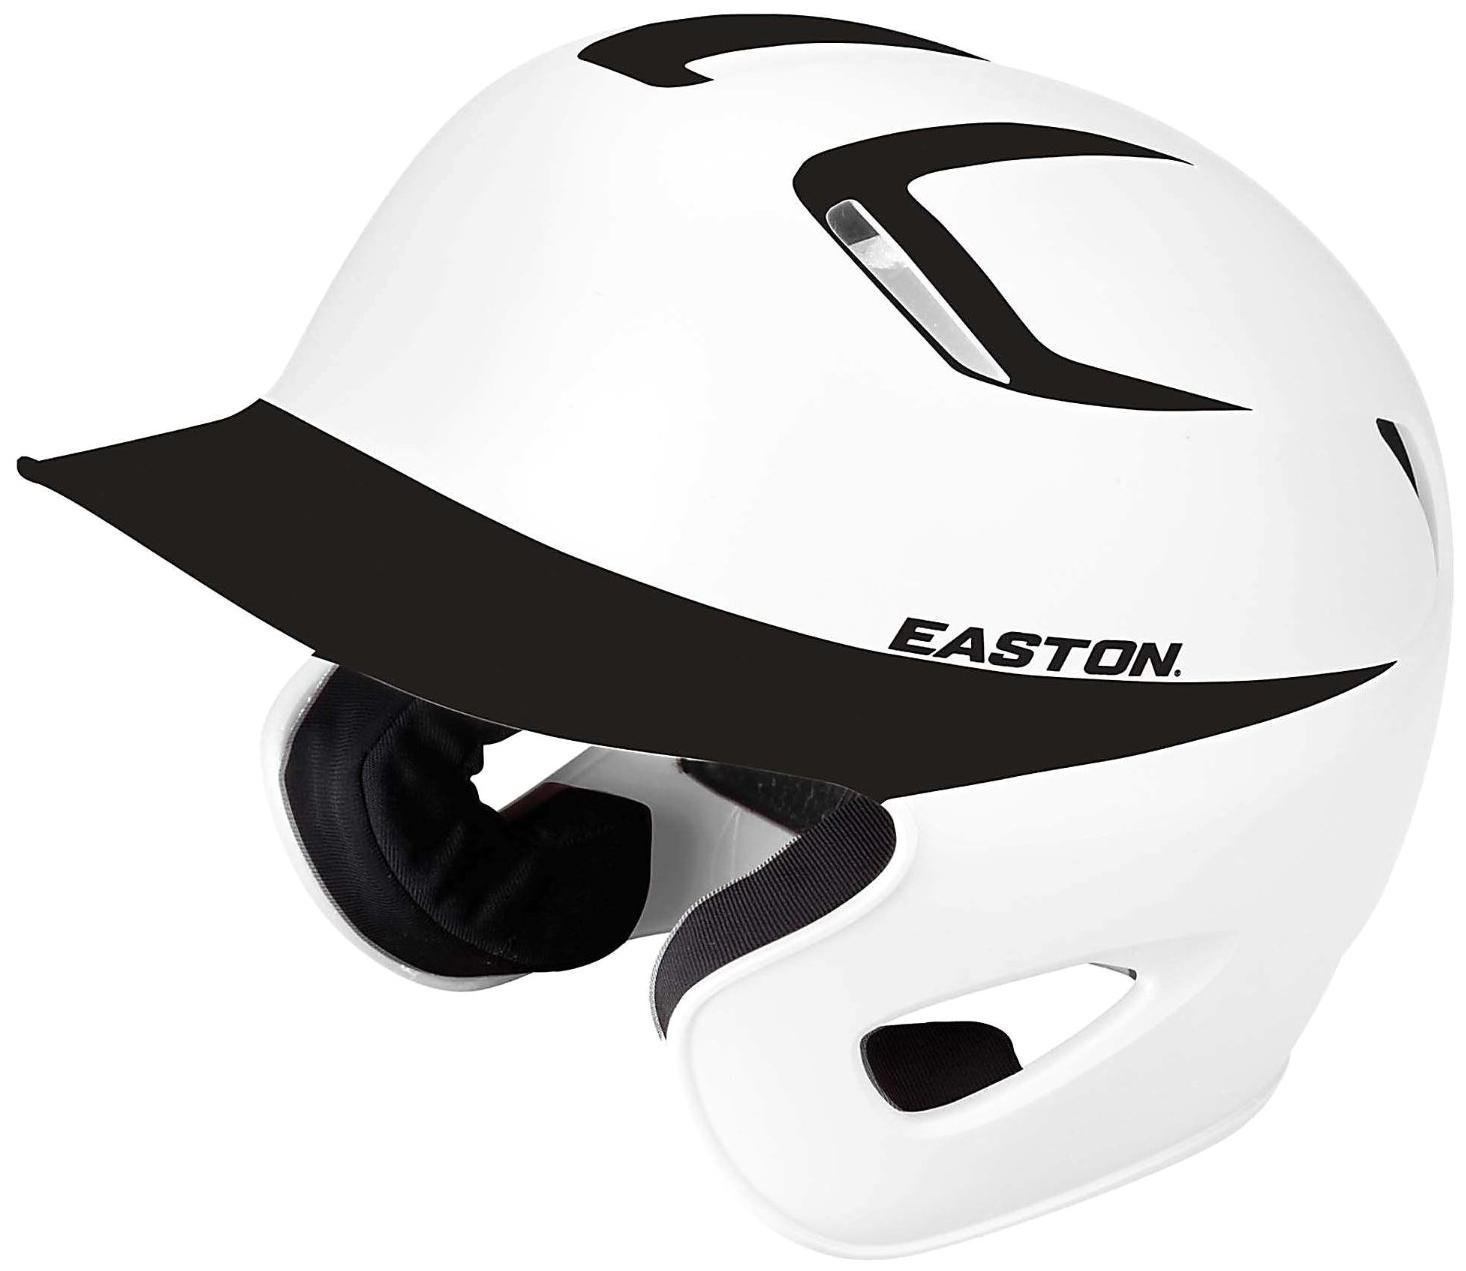 Amazon.com : Easton Stealth Grip Two-Tone Batting Helmet, Navy/White, Small : Baseball Batting Helmets : Sports & Outdoors